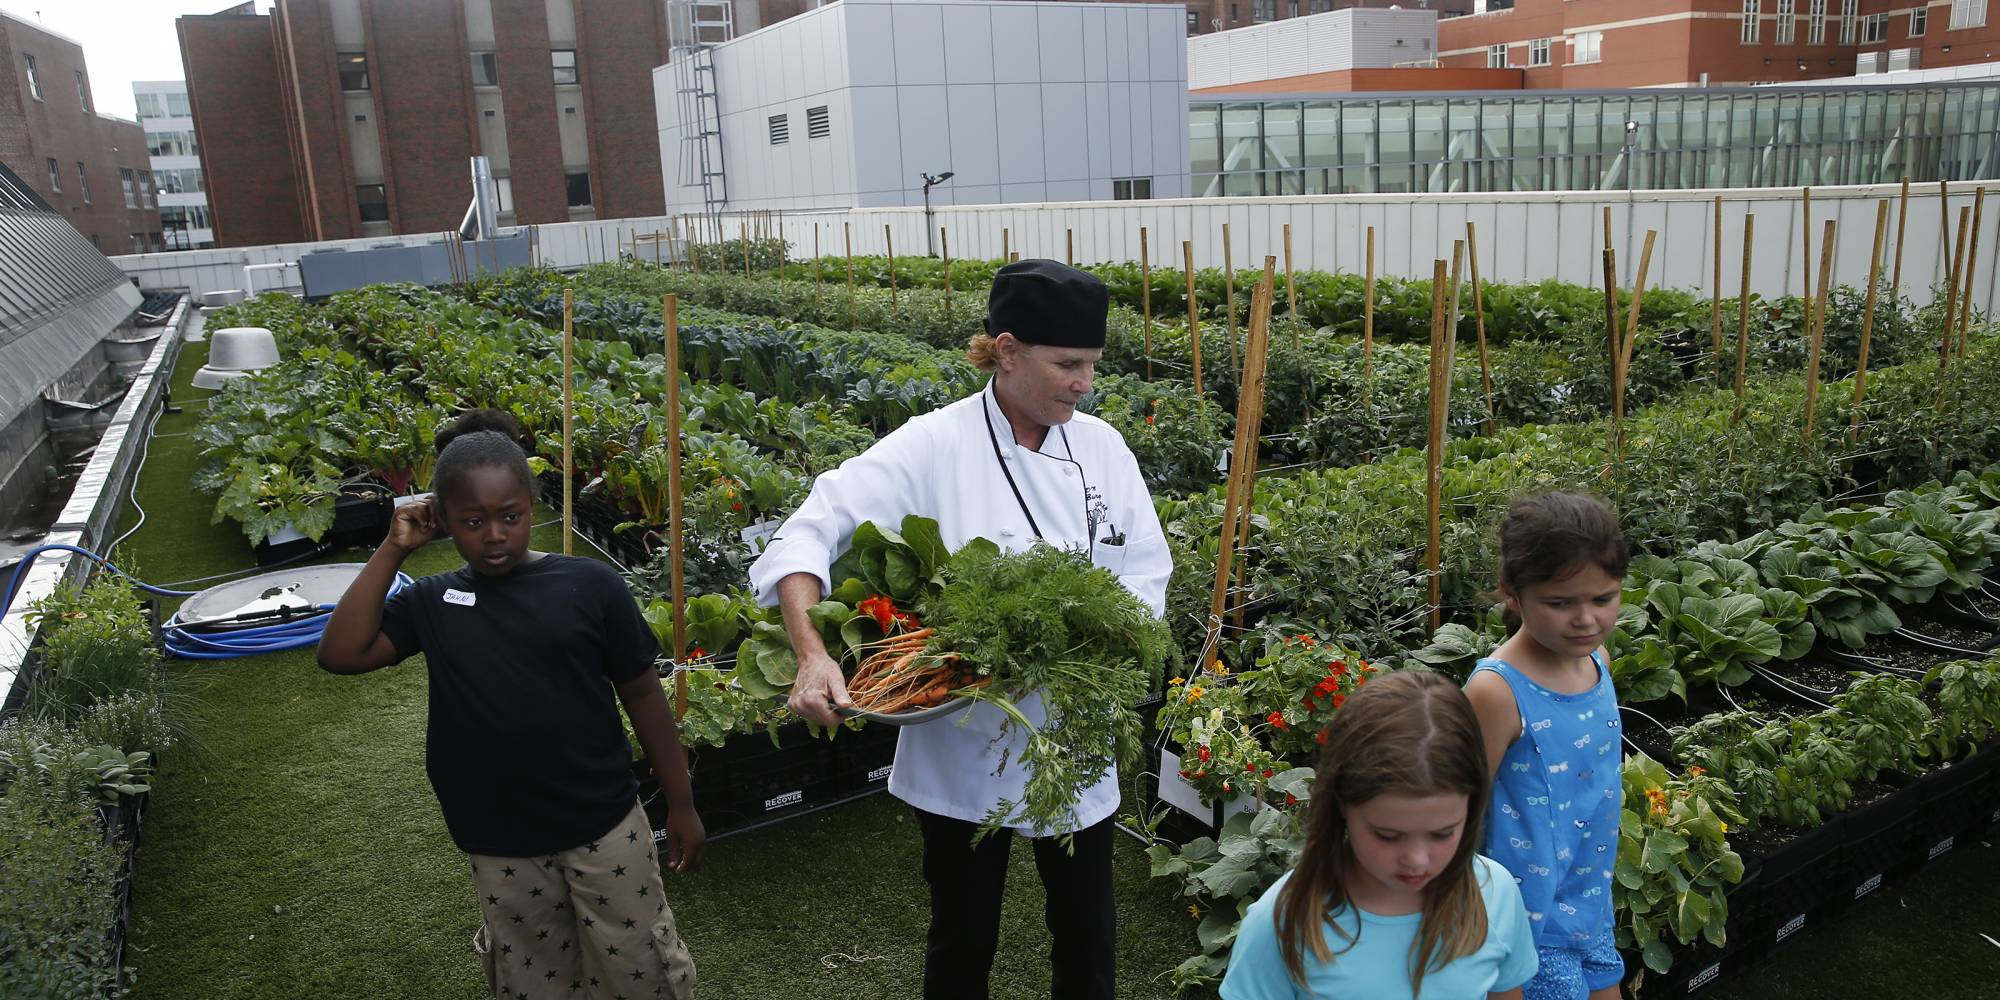 Tracey Burg, center, carries a tray of freshly picked veggies as she and campers from BMC's summer culinary camp walk to the kitchen to make a meal with their harvest at Boston Medical Center's Rooftop Farm in Boston on Jul. 12, 2017. The garden is part of a growing trend in employee wellness. In many instances, community garden groups provide the knowledge, infrastructure, and oversight, and companies provide enthusiastic workers. The produce that is grown is often donated to local food banks or sent home.